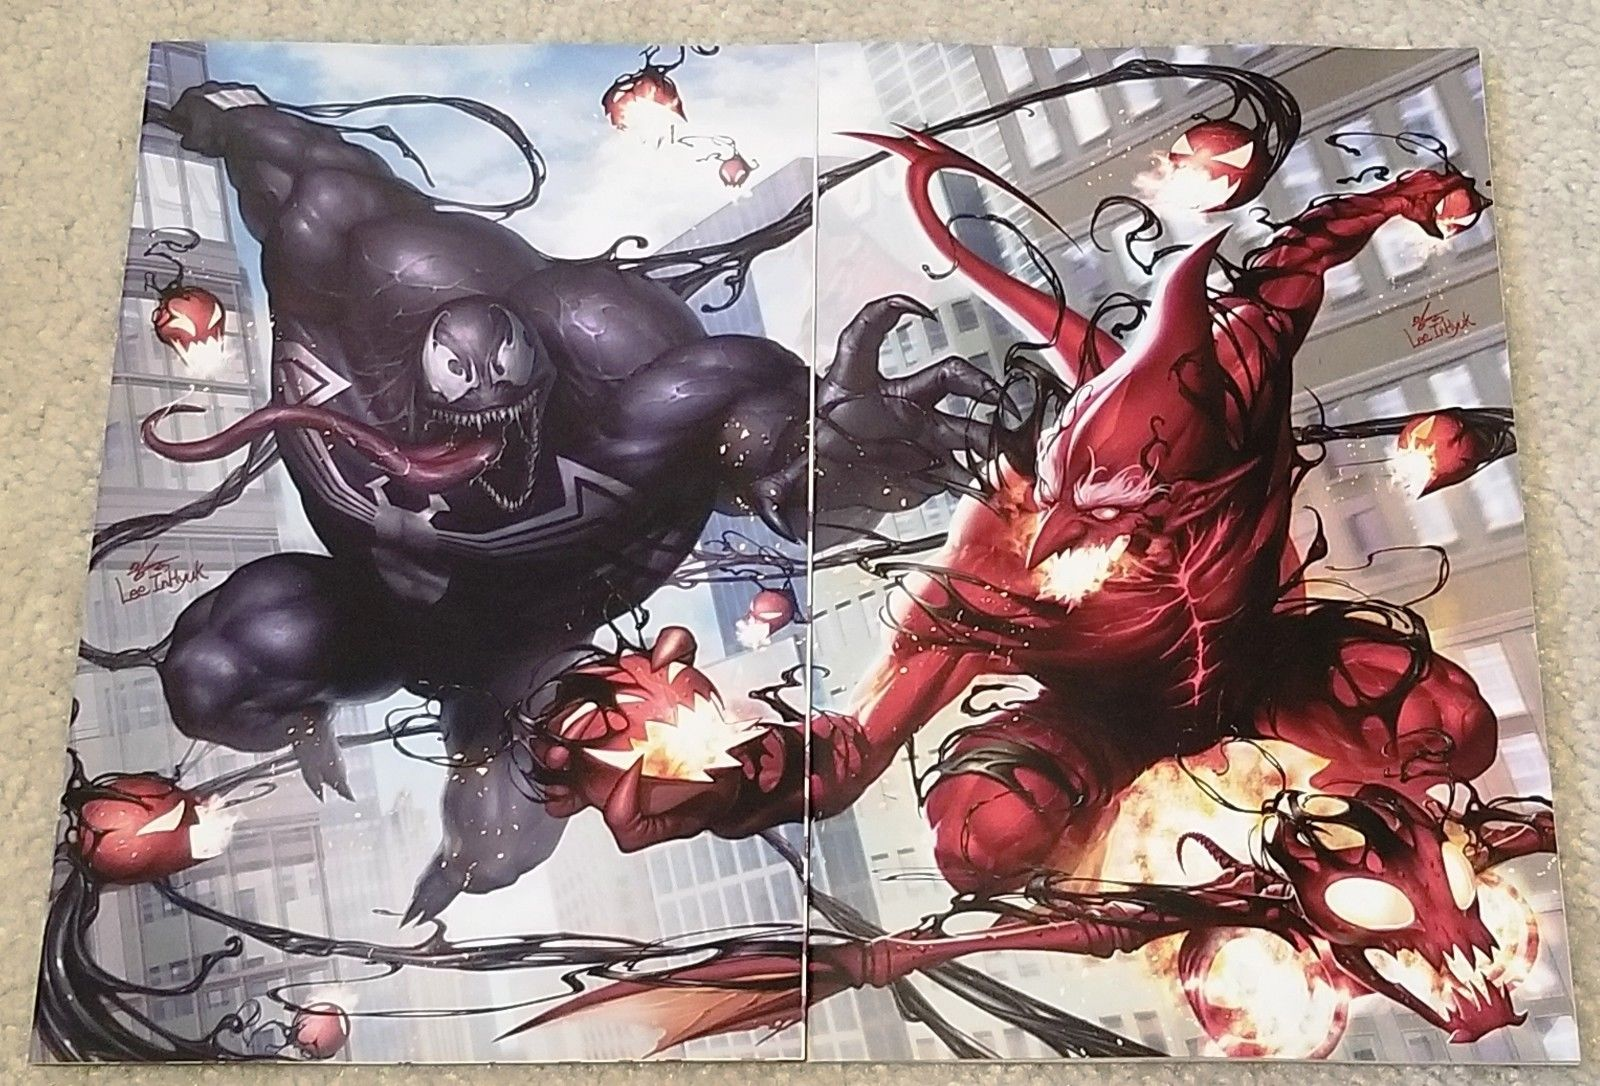 AMAZING SPIDER-MAN #801 VENOM #1 INHYUK LEE VIRGIN EXCLUSIVE VARIANT SET RED GOBLIN